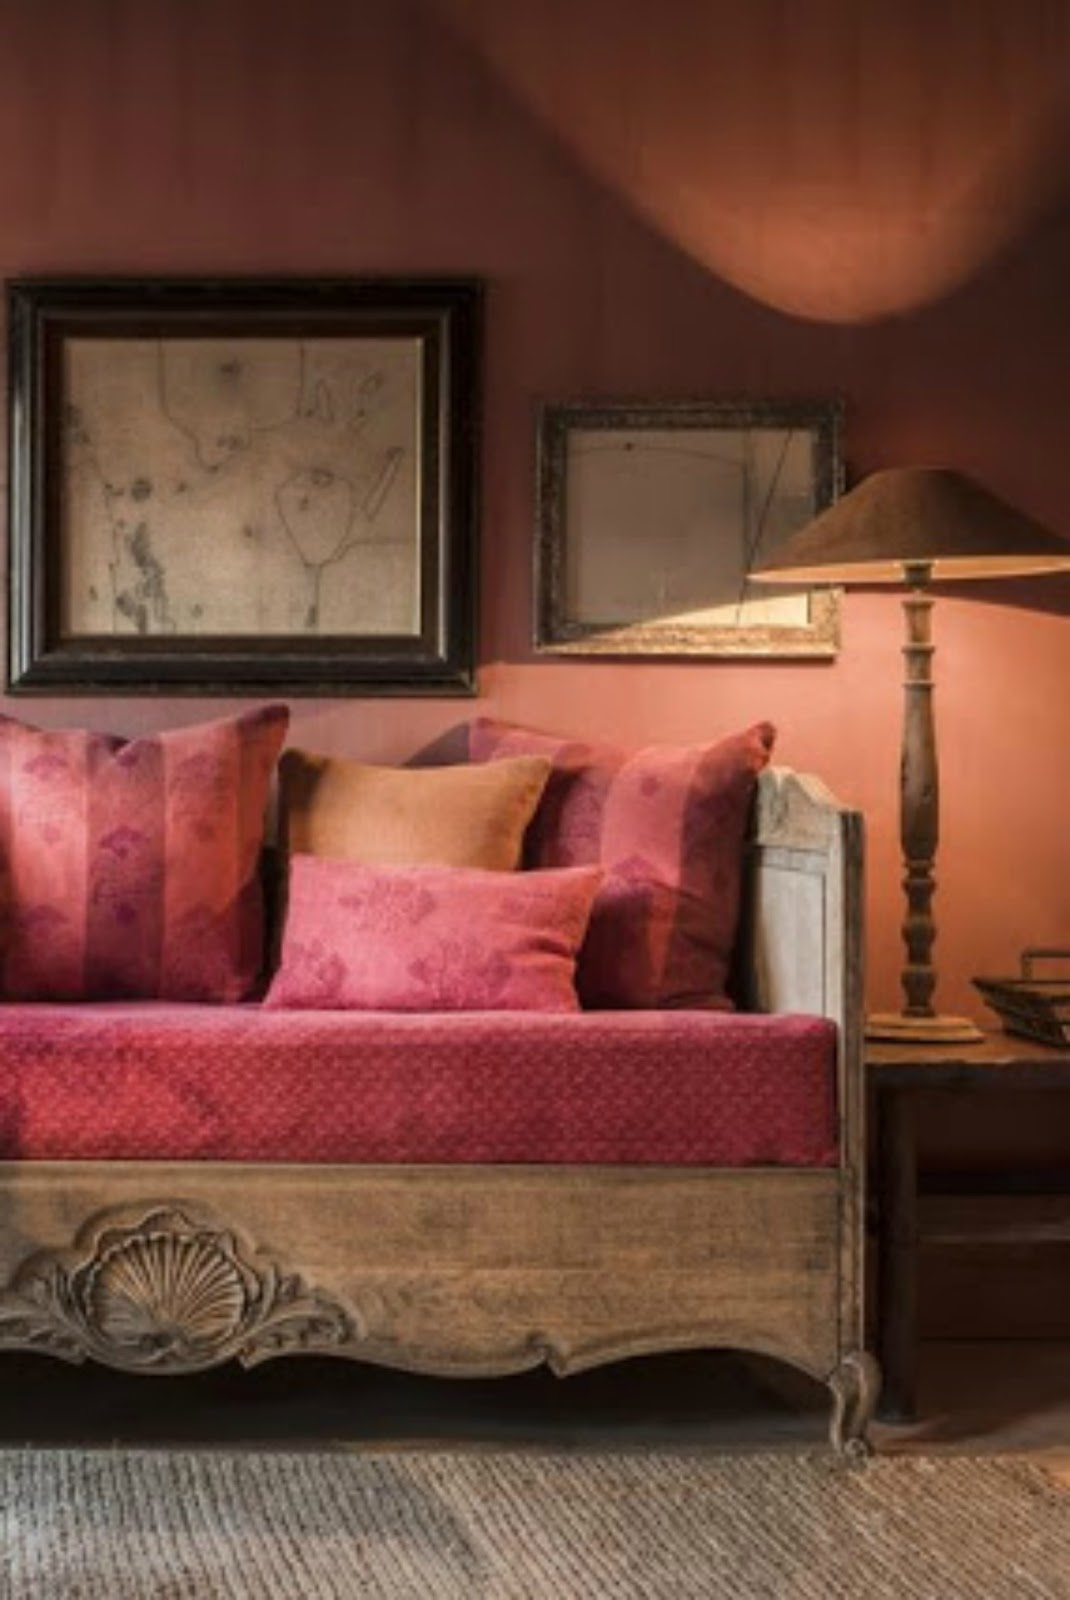 Rich red and orange interior design in a Belgian style living room - found on Hello Lovely Studio